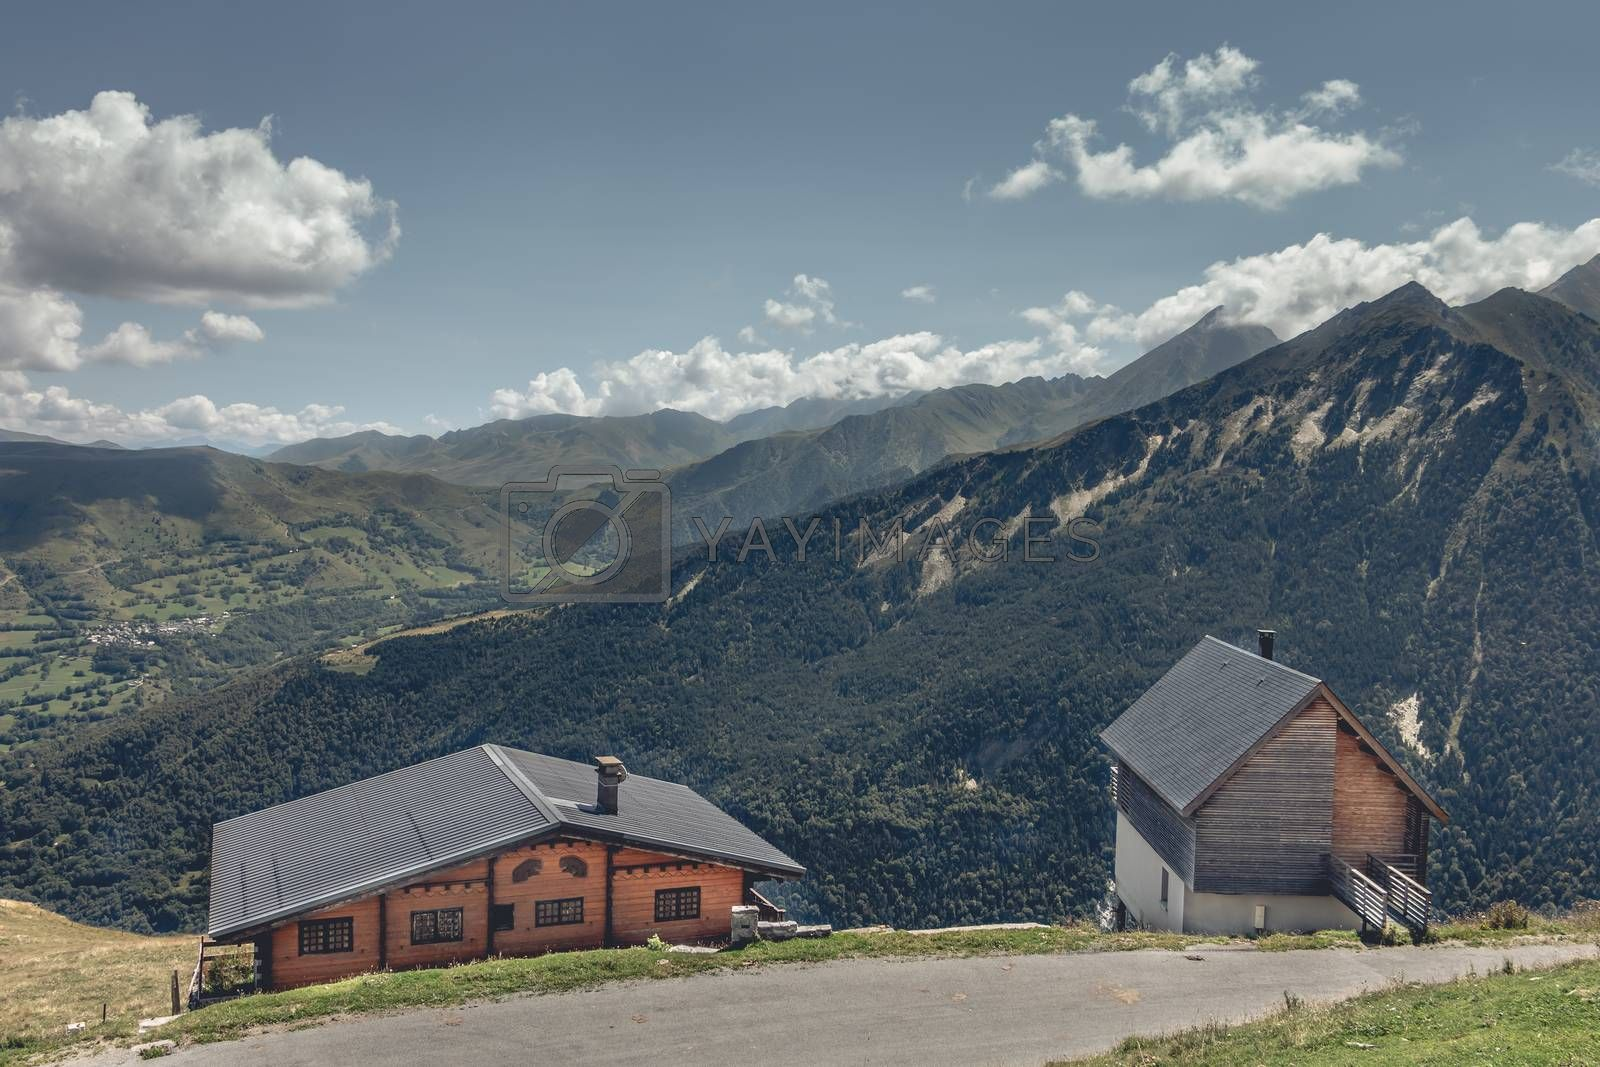 Saint Lary, France - August 20, 2018: Typical mountain log cabins on the height of the mountains with a plummeting view of the valley